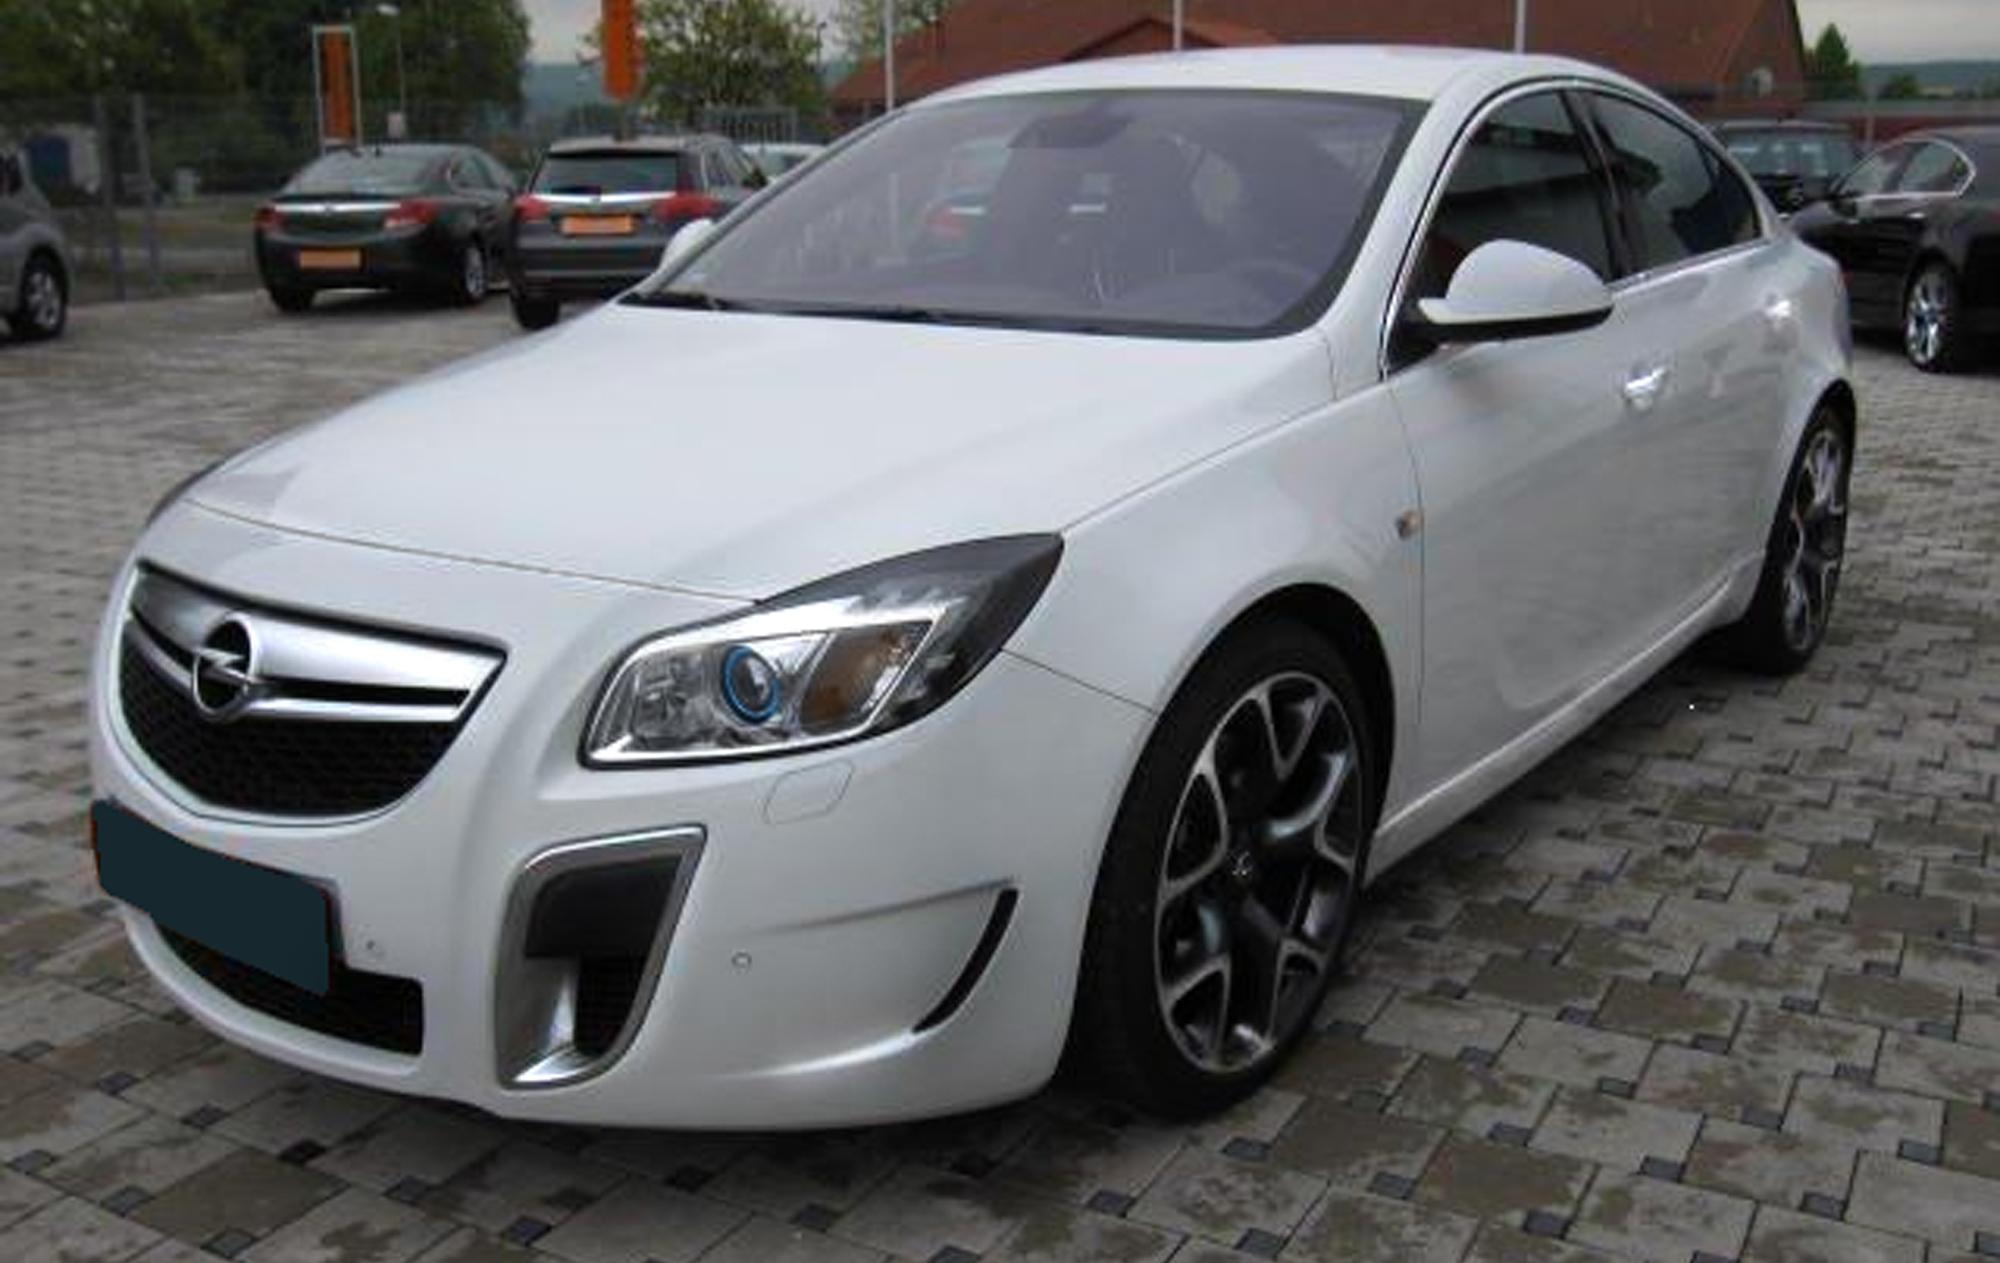 House Charging Station File Opel Insignia 4t Opc Jpg Wikimedia Commons